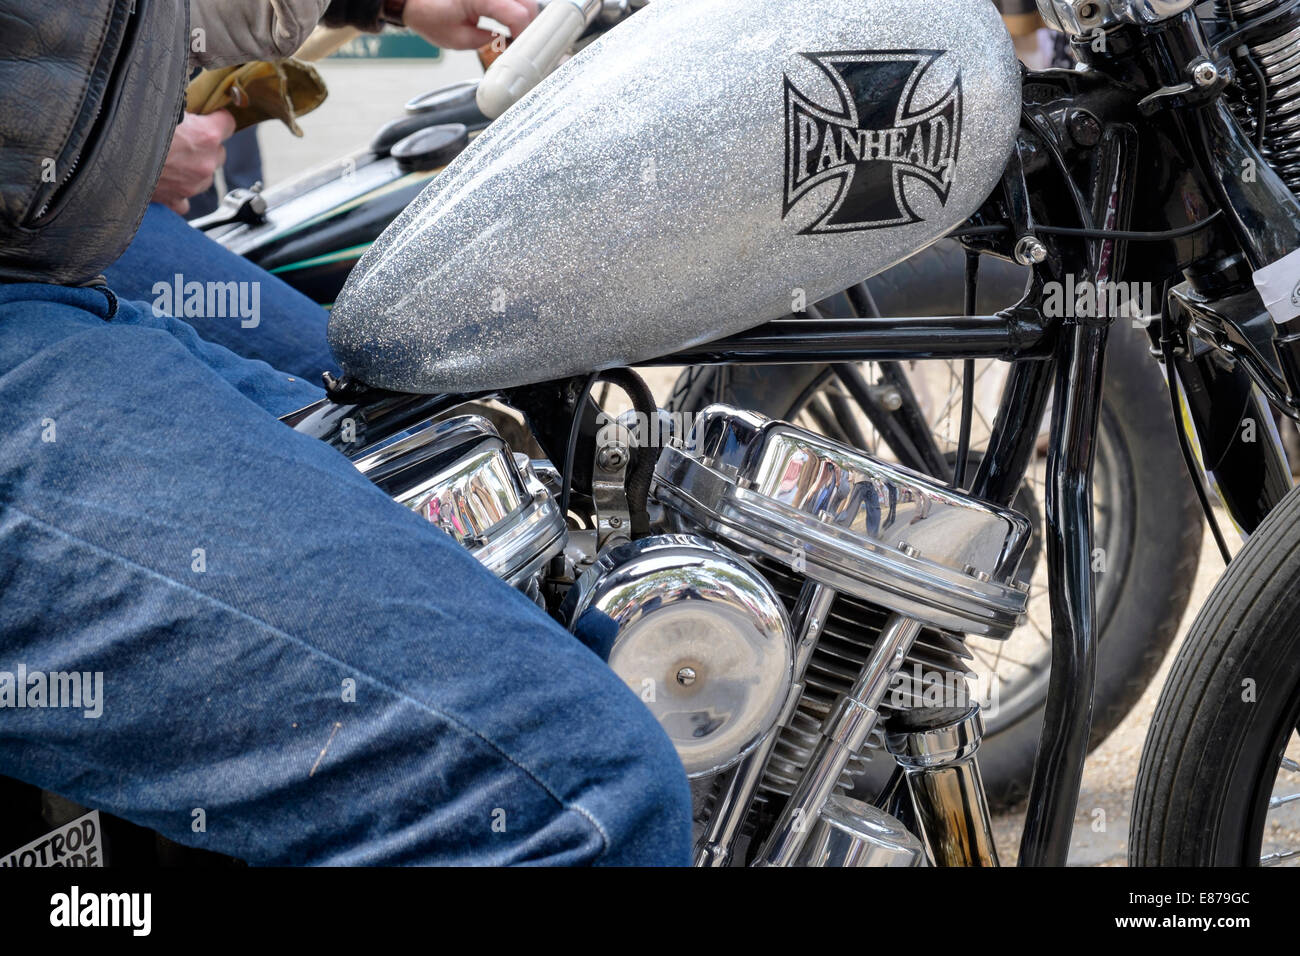 close up of custom harley davidson motorcycle panhead engine detail stock photo  royalty free